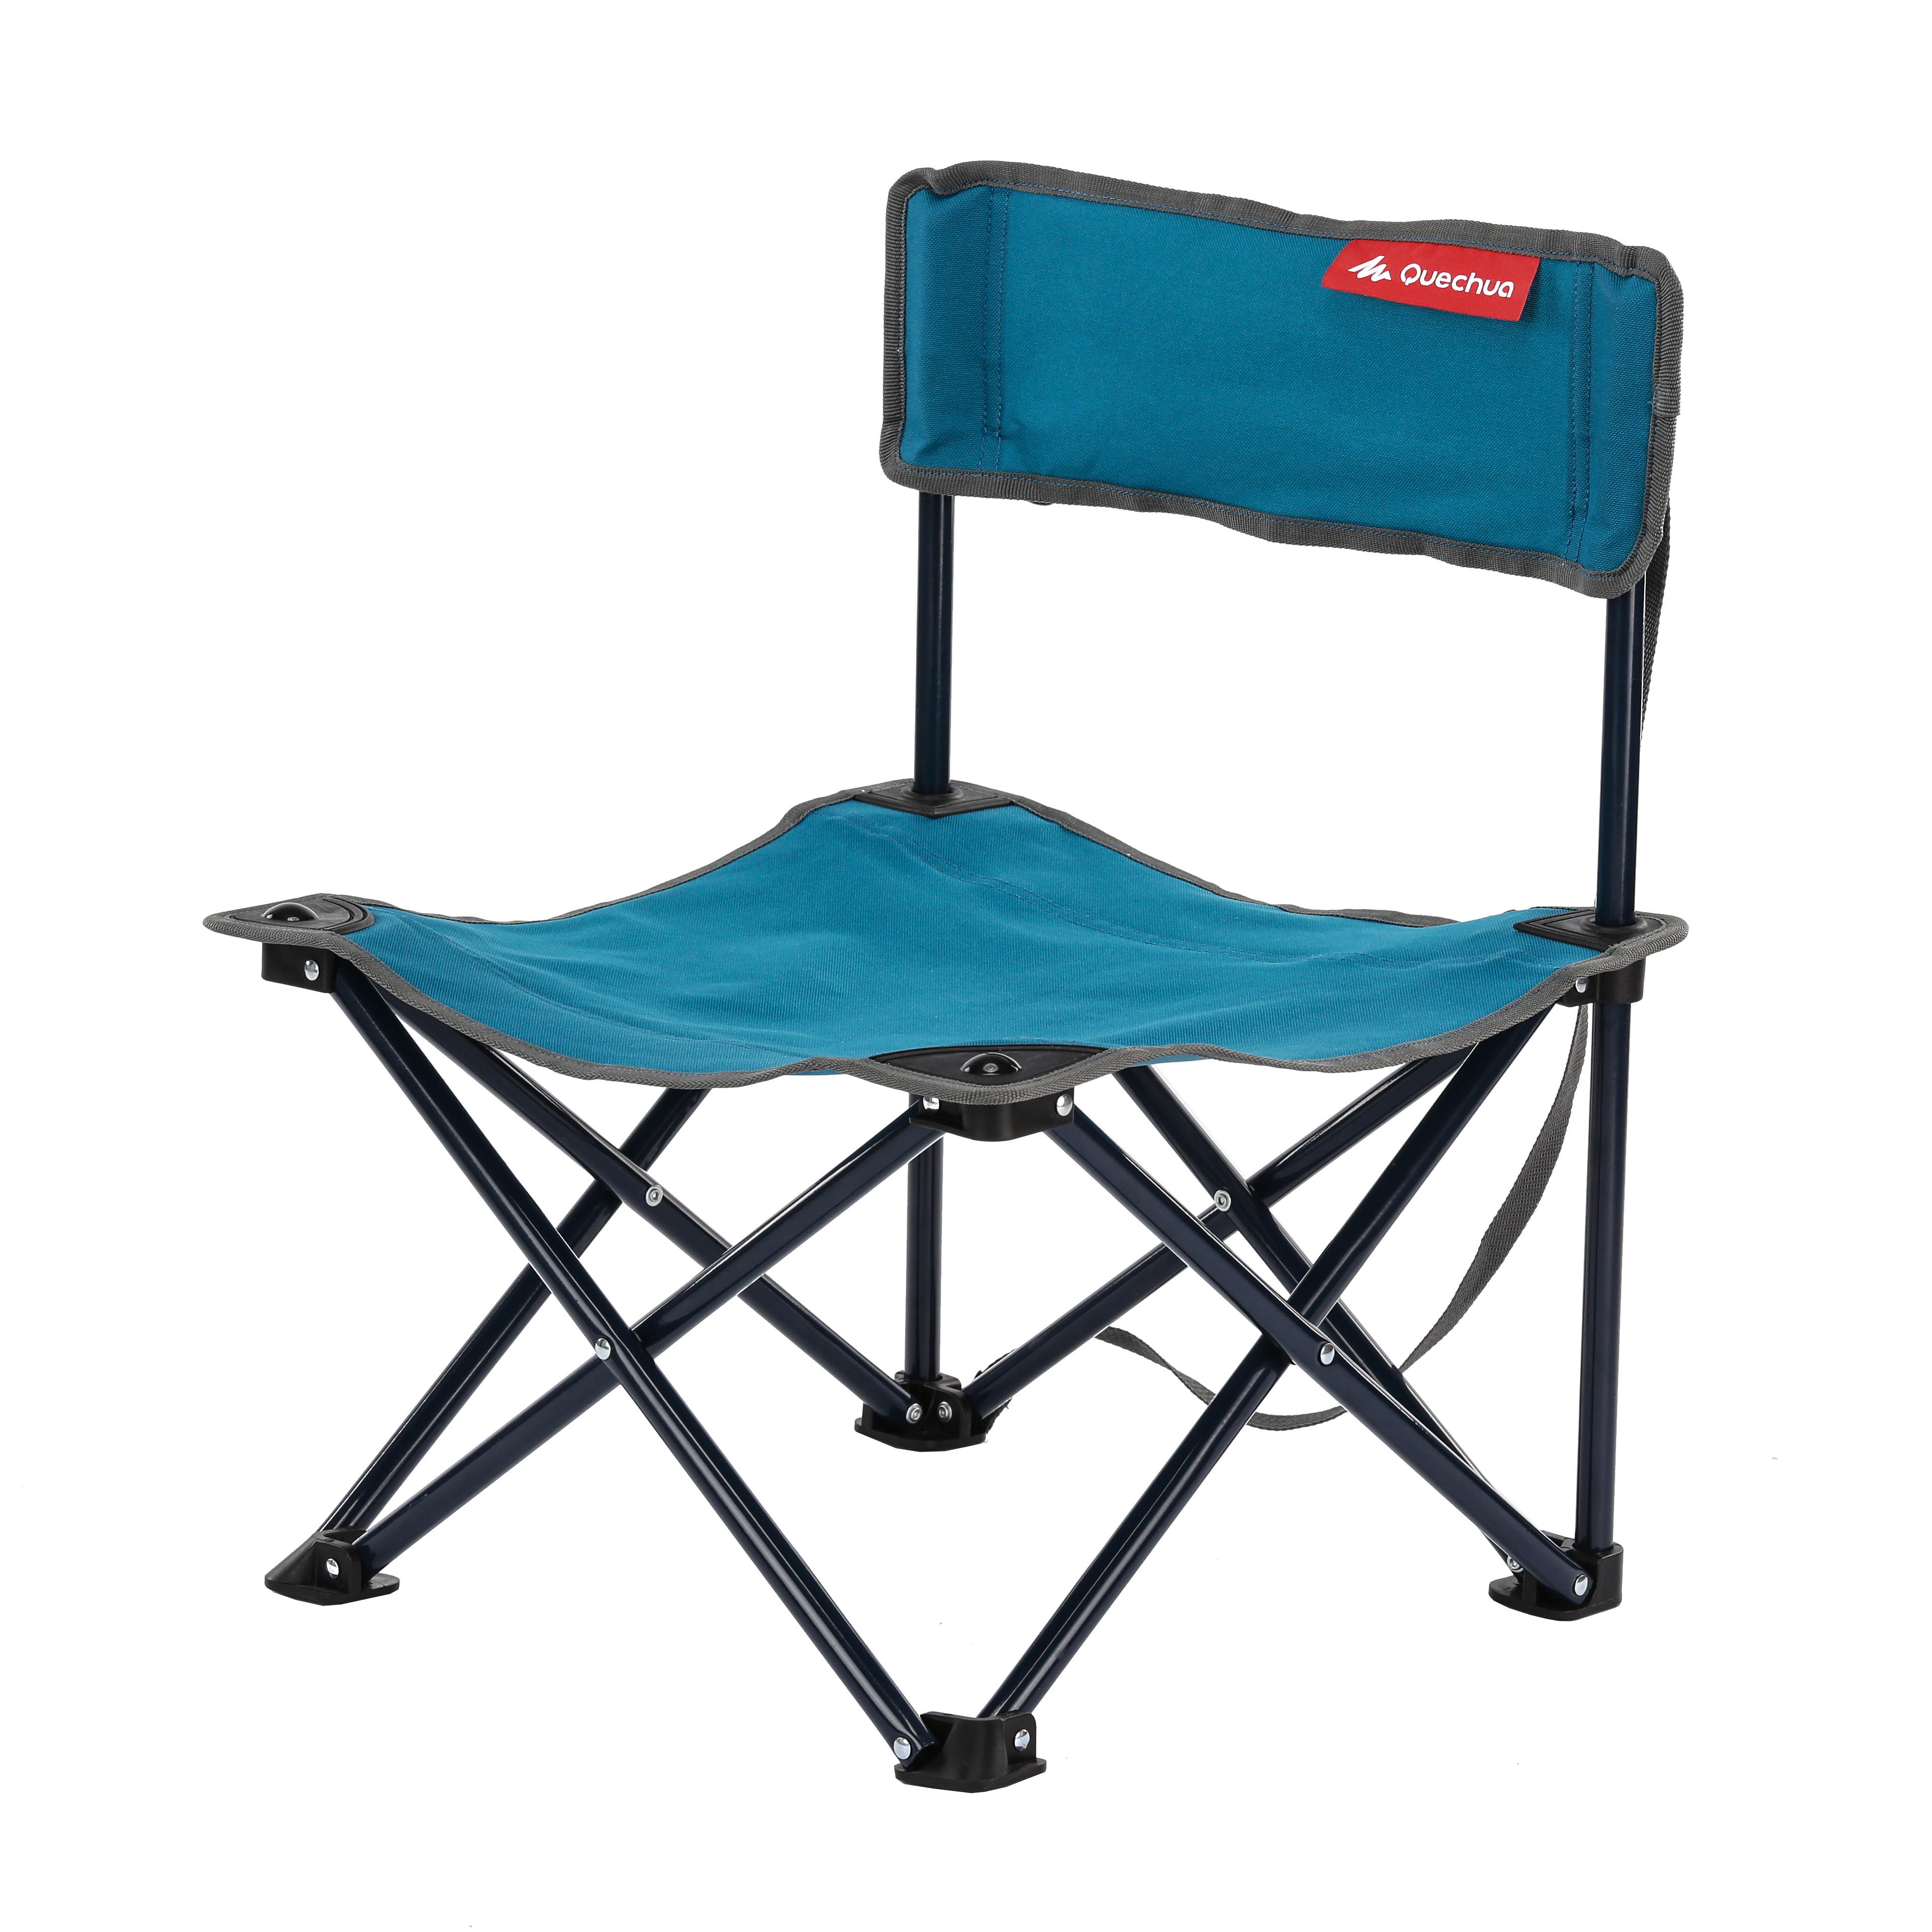 Trendy low chair blue with table camping decathlon for Table quechua